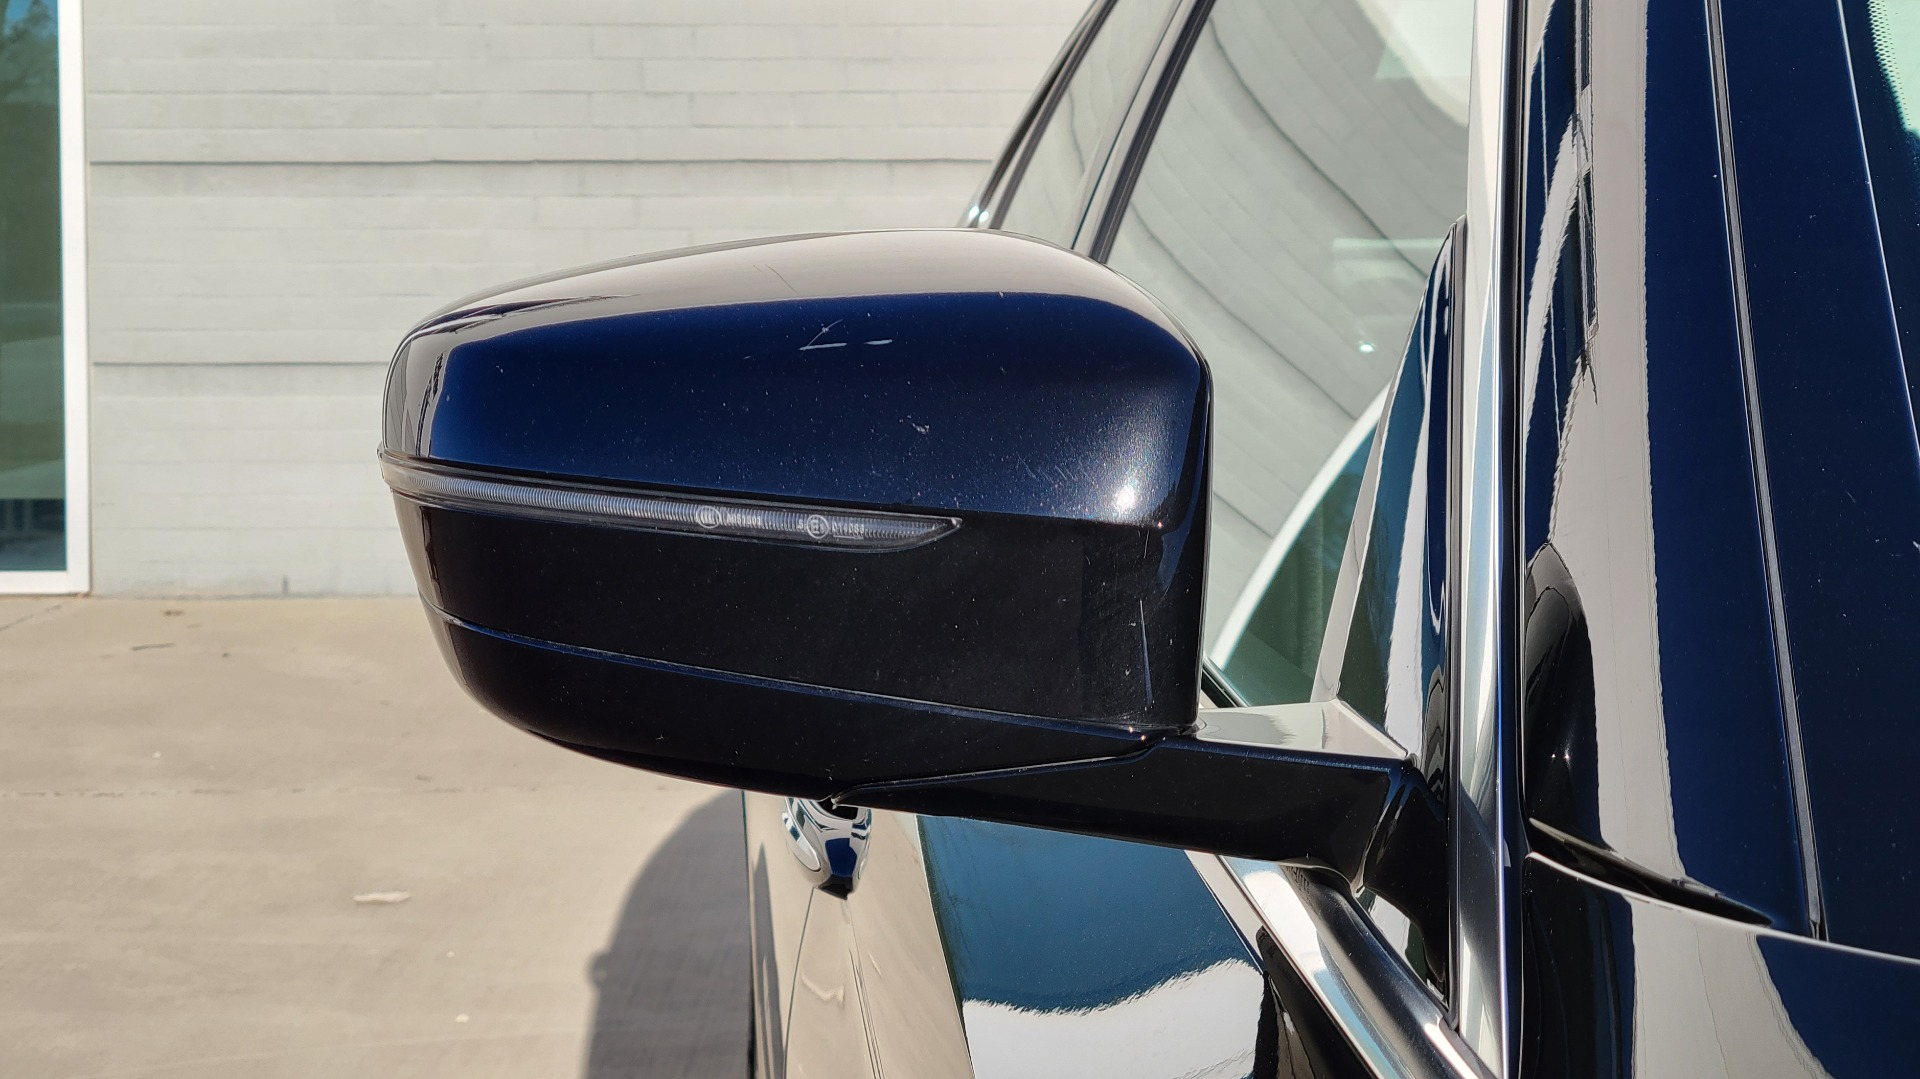 Used 2017 BMW 5 SERIES 530I XDRIVE PREMIUM / NAV / SUNROOF / PARK ASST / CLOD WTHR / REARVIEW for sale Sold at Formula Imports in Charlotte NC 28227 20